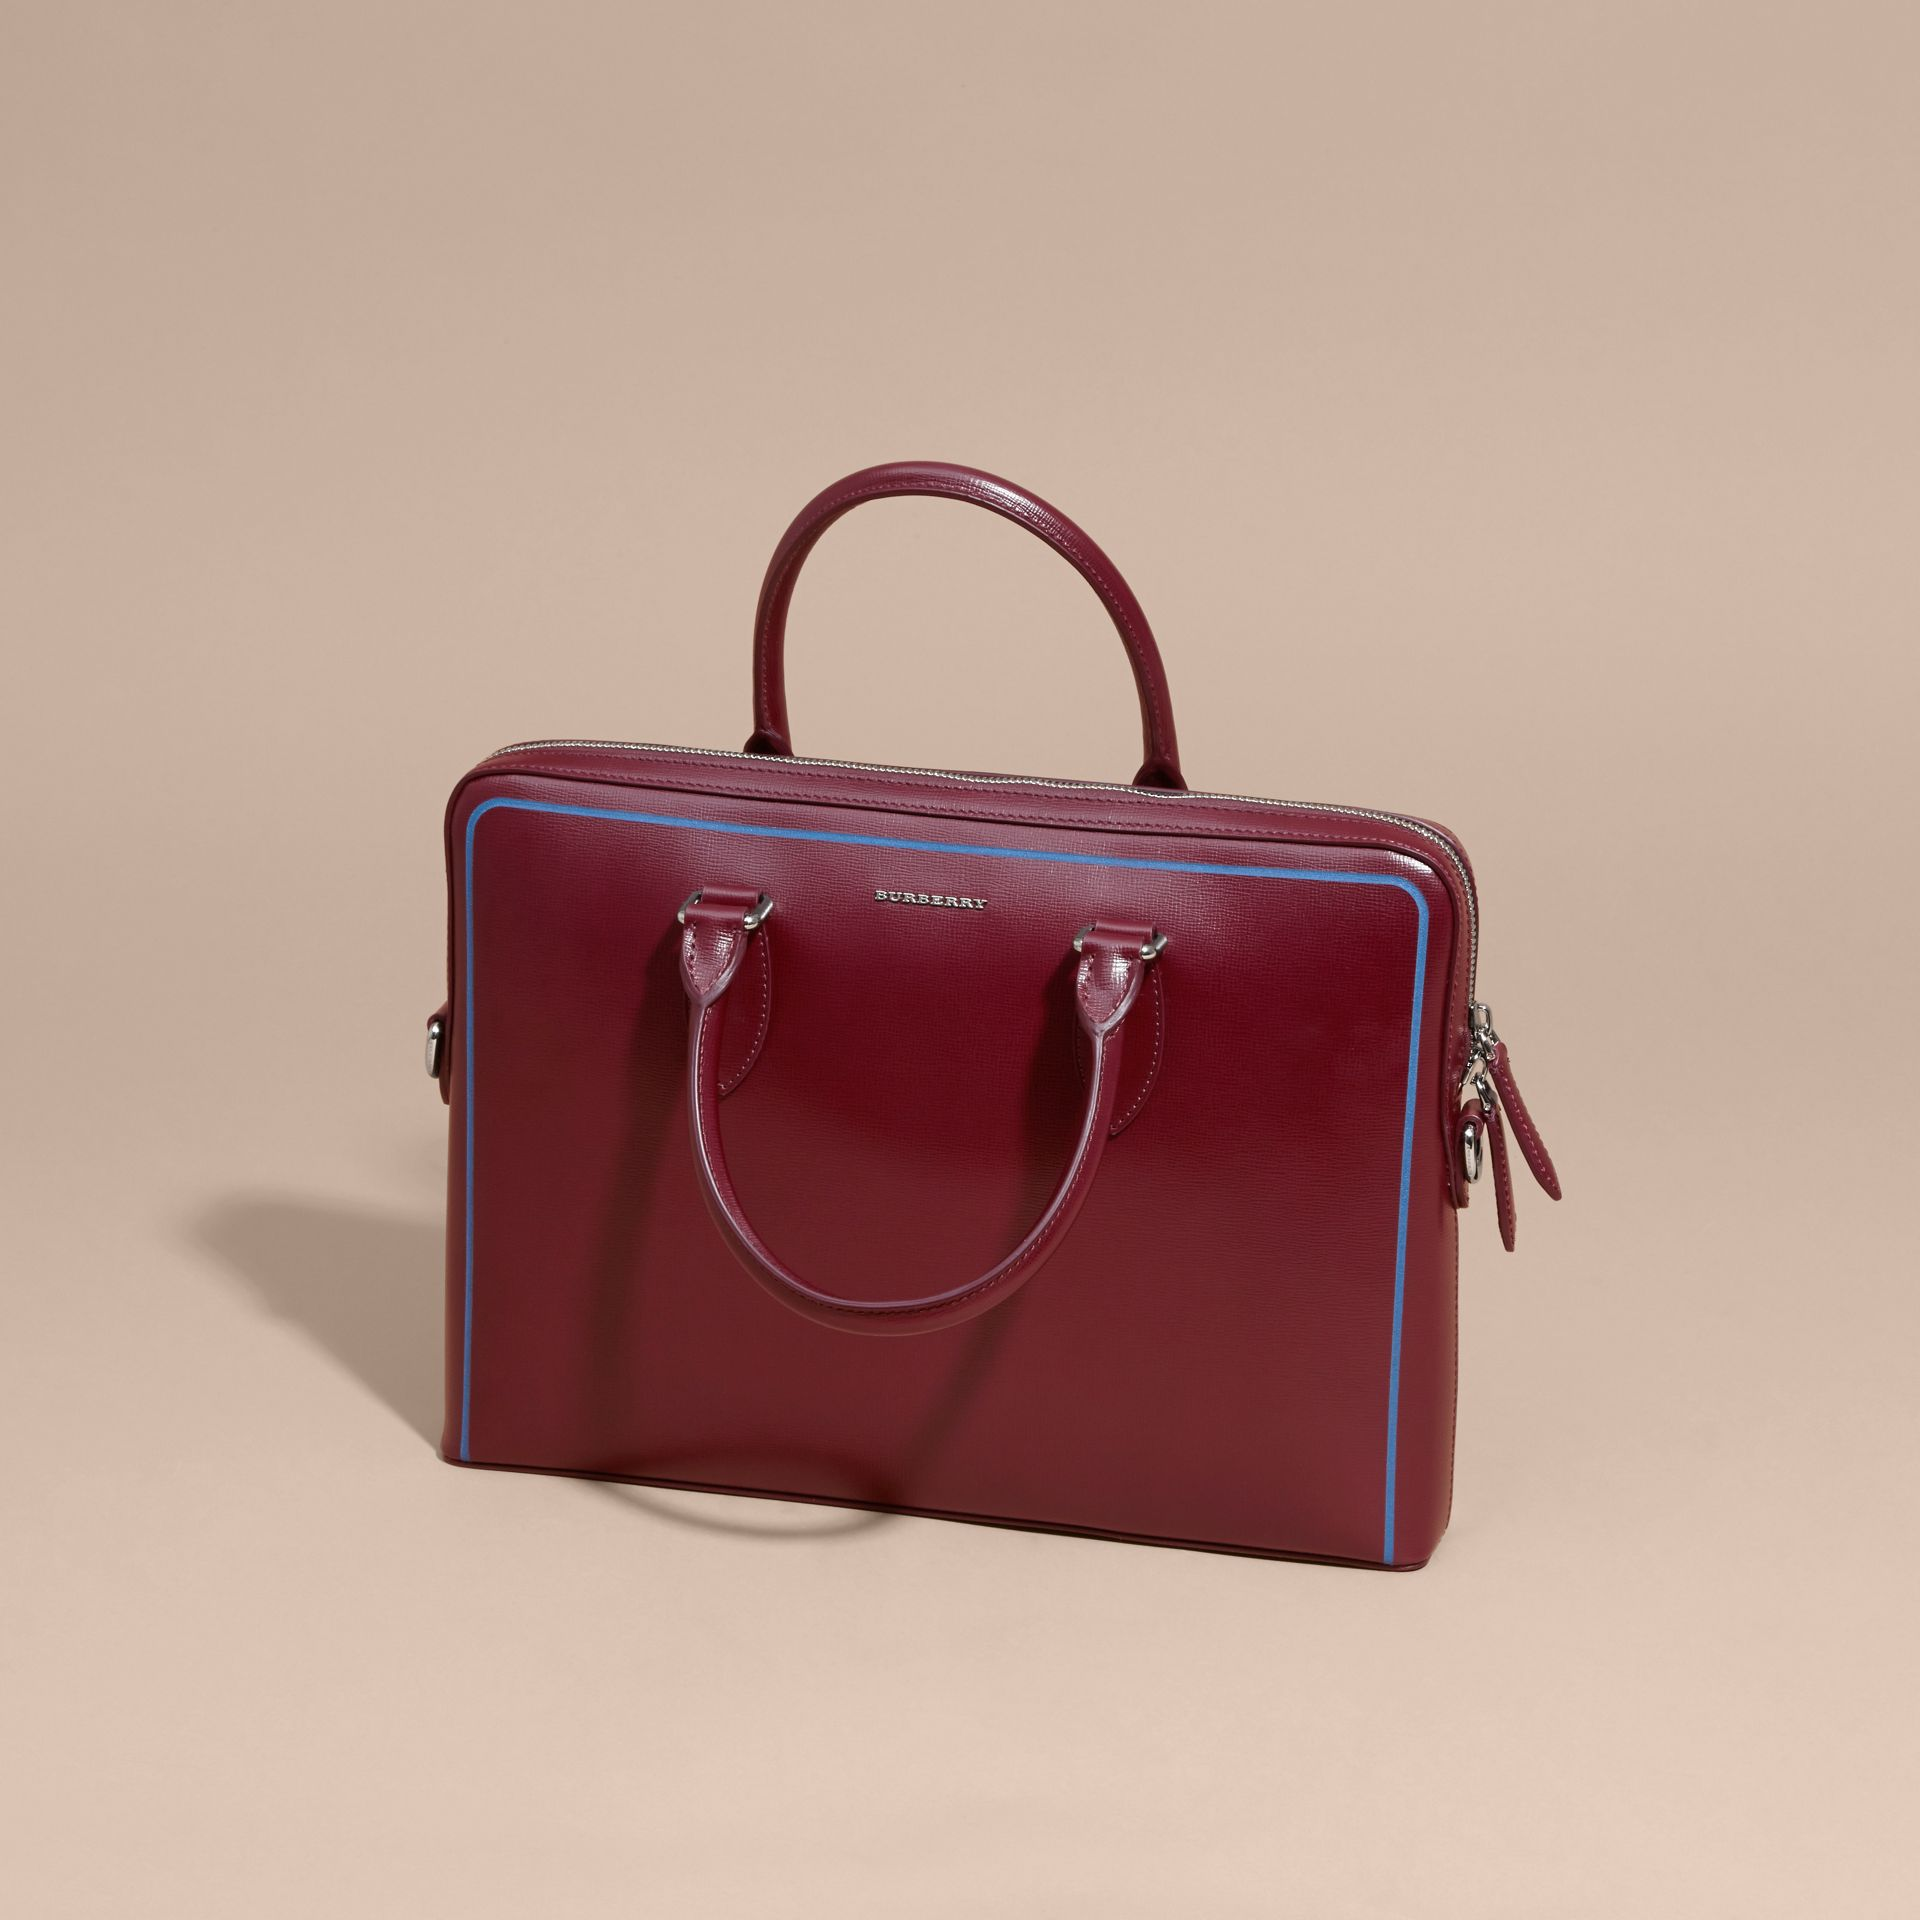 Burgundy red The Slim Barrow Bag in London Leather with Border Detail Burgundy Red - gallery image 8